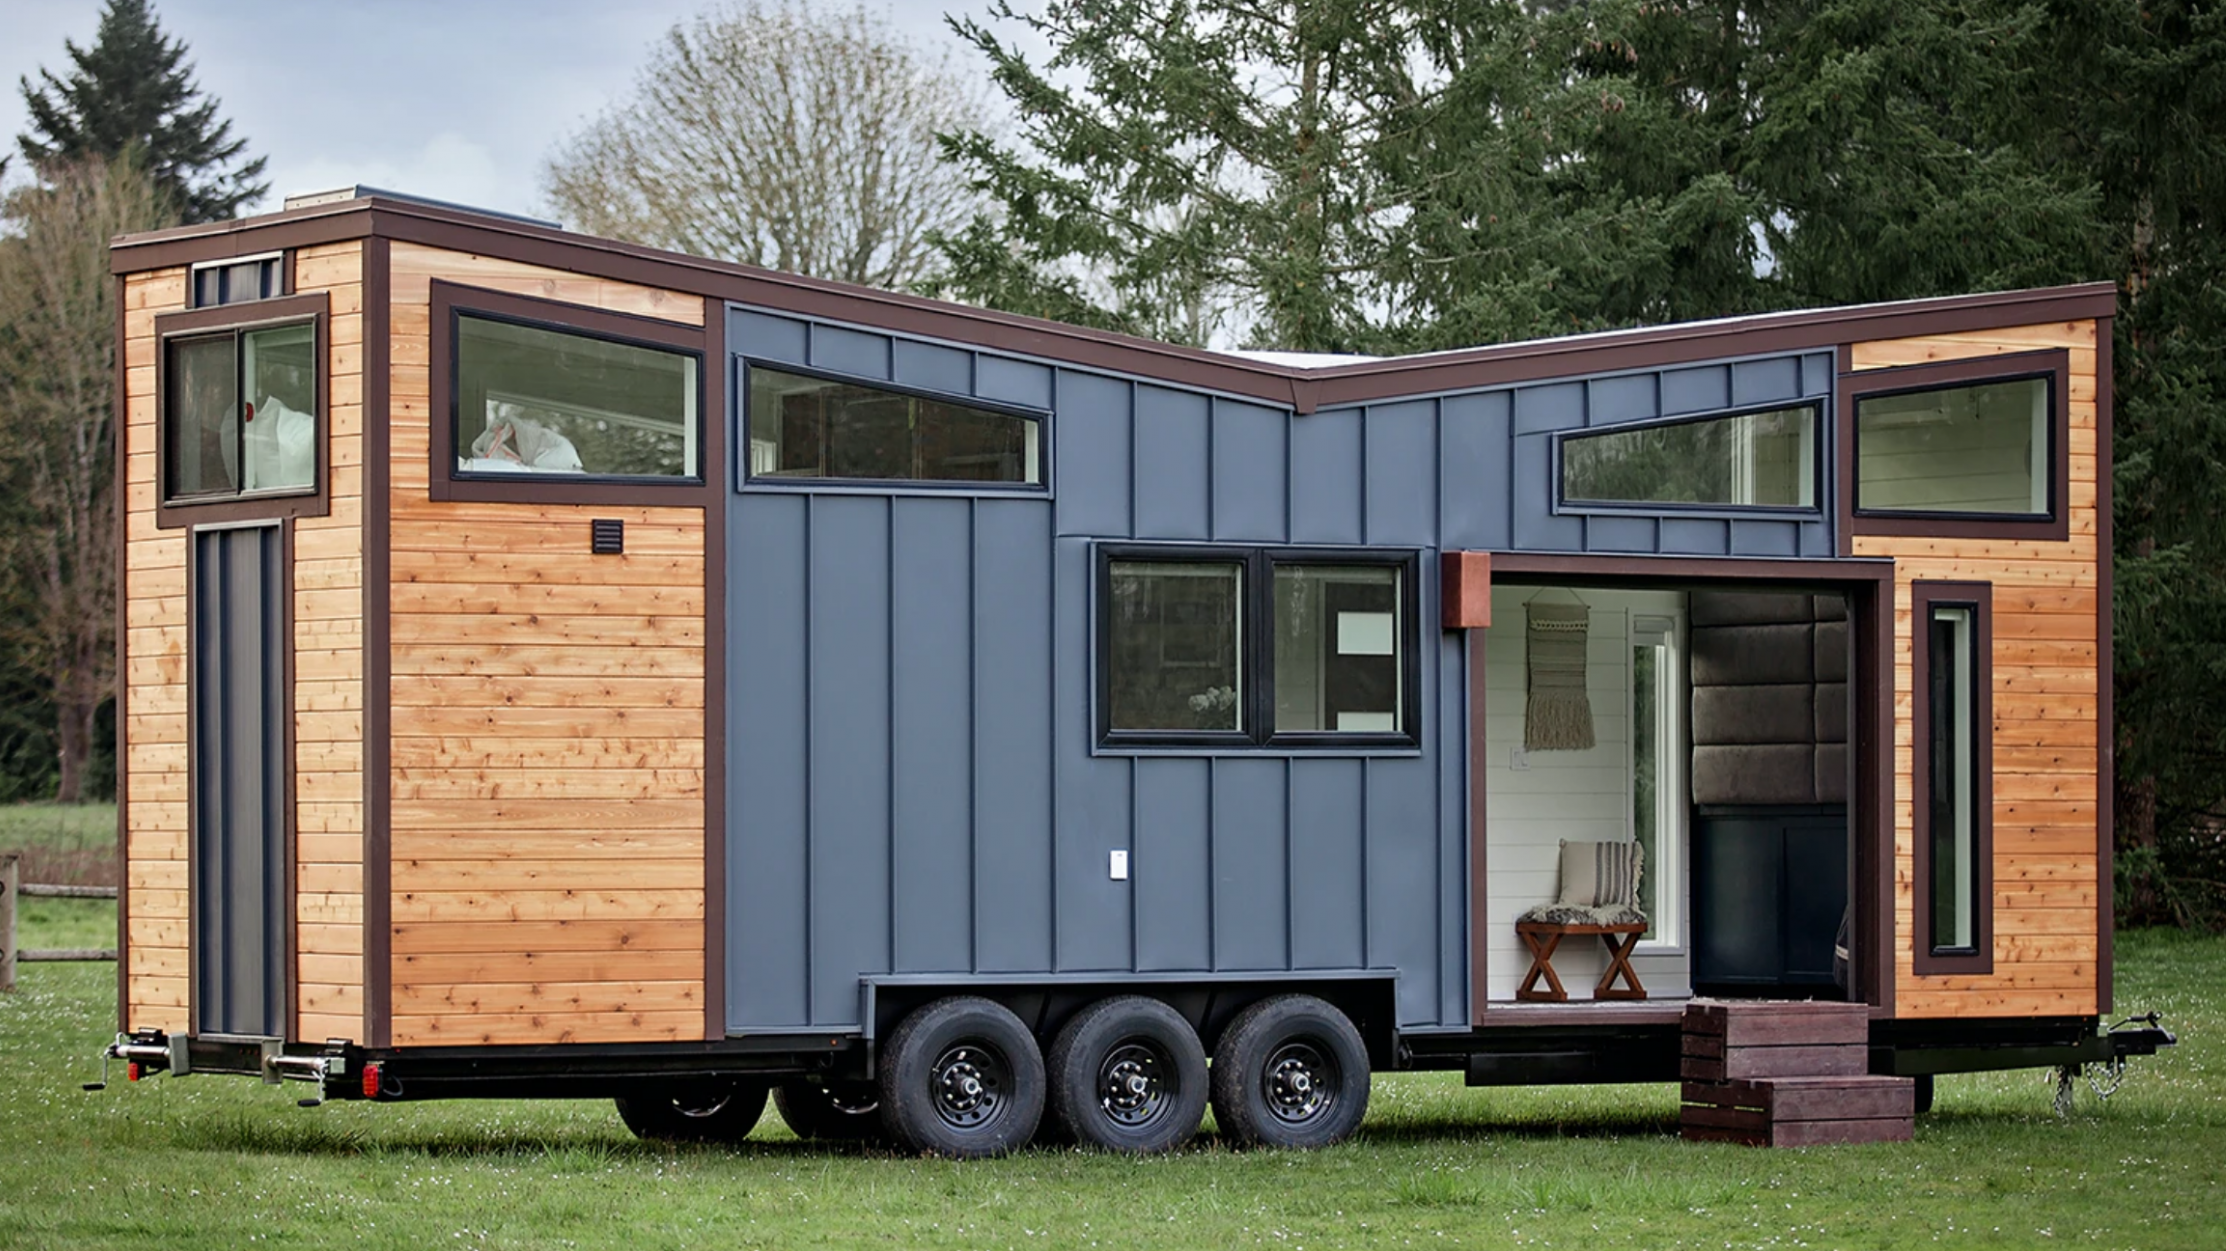 You Can Win a Custom Tiny Home While Supporting a Charity That Helps Girls Learn New Skills